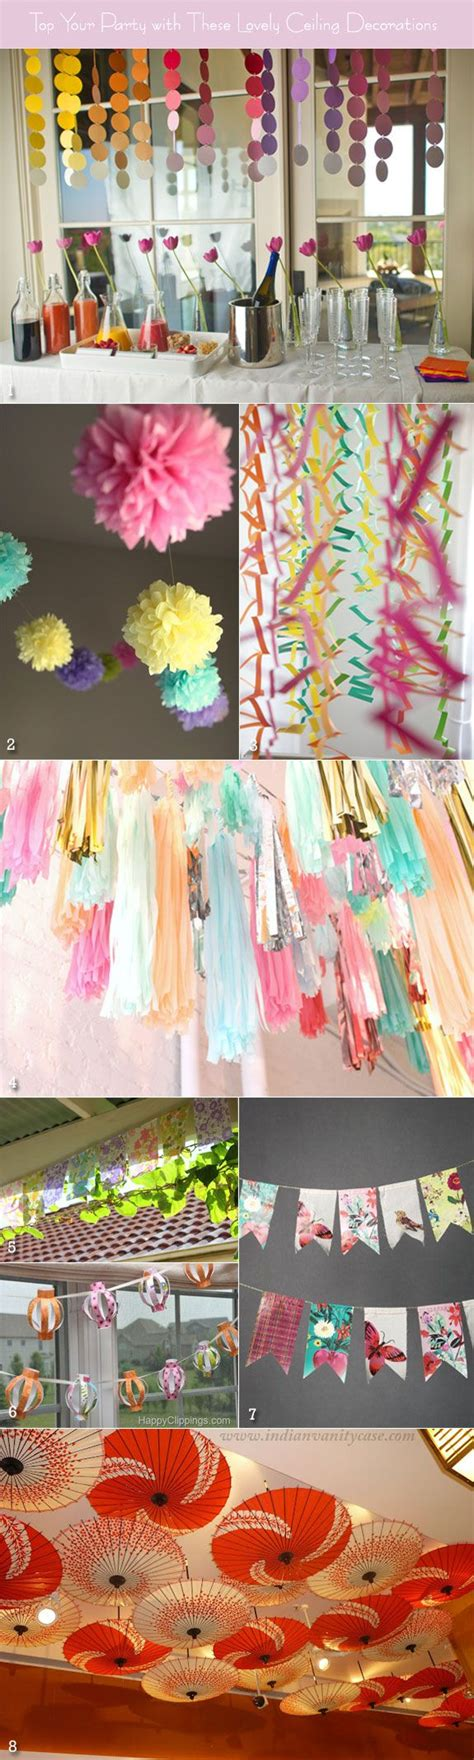 ceiling decorations decorate for parties pinterest ceiling decorations to glam up your spring wedding shower